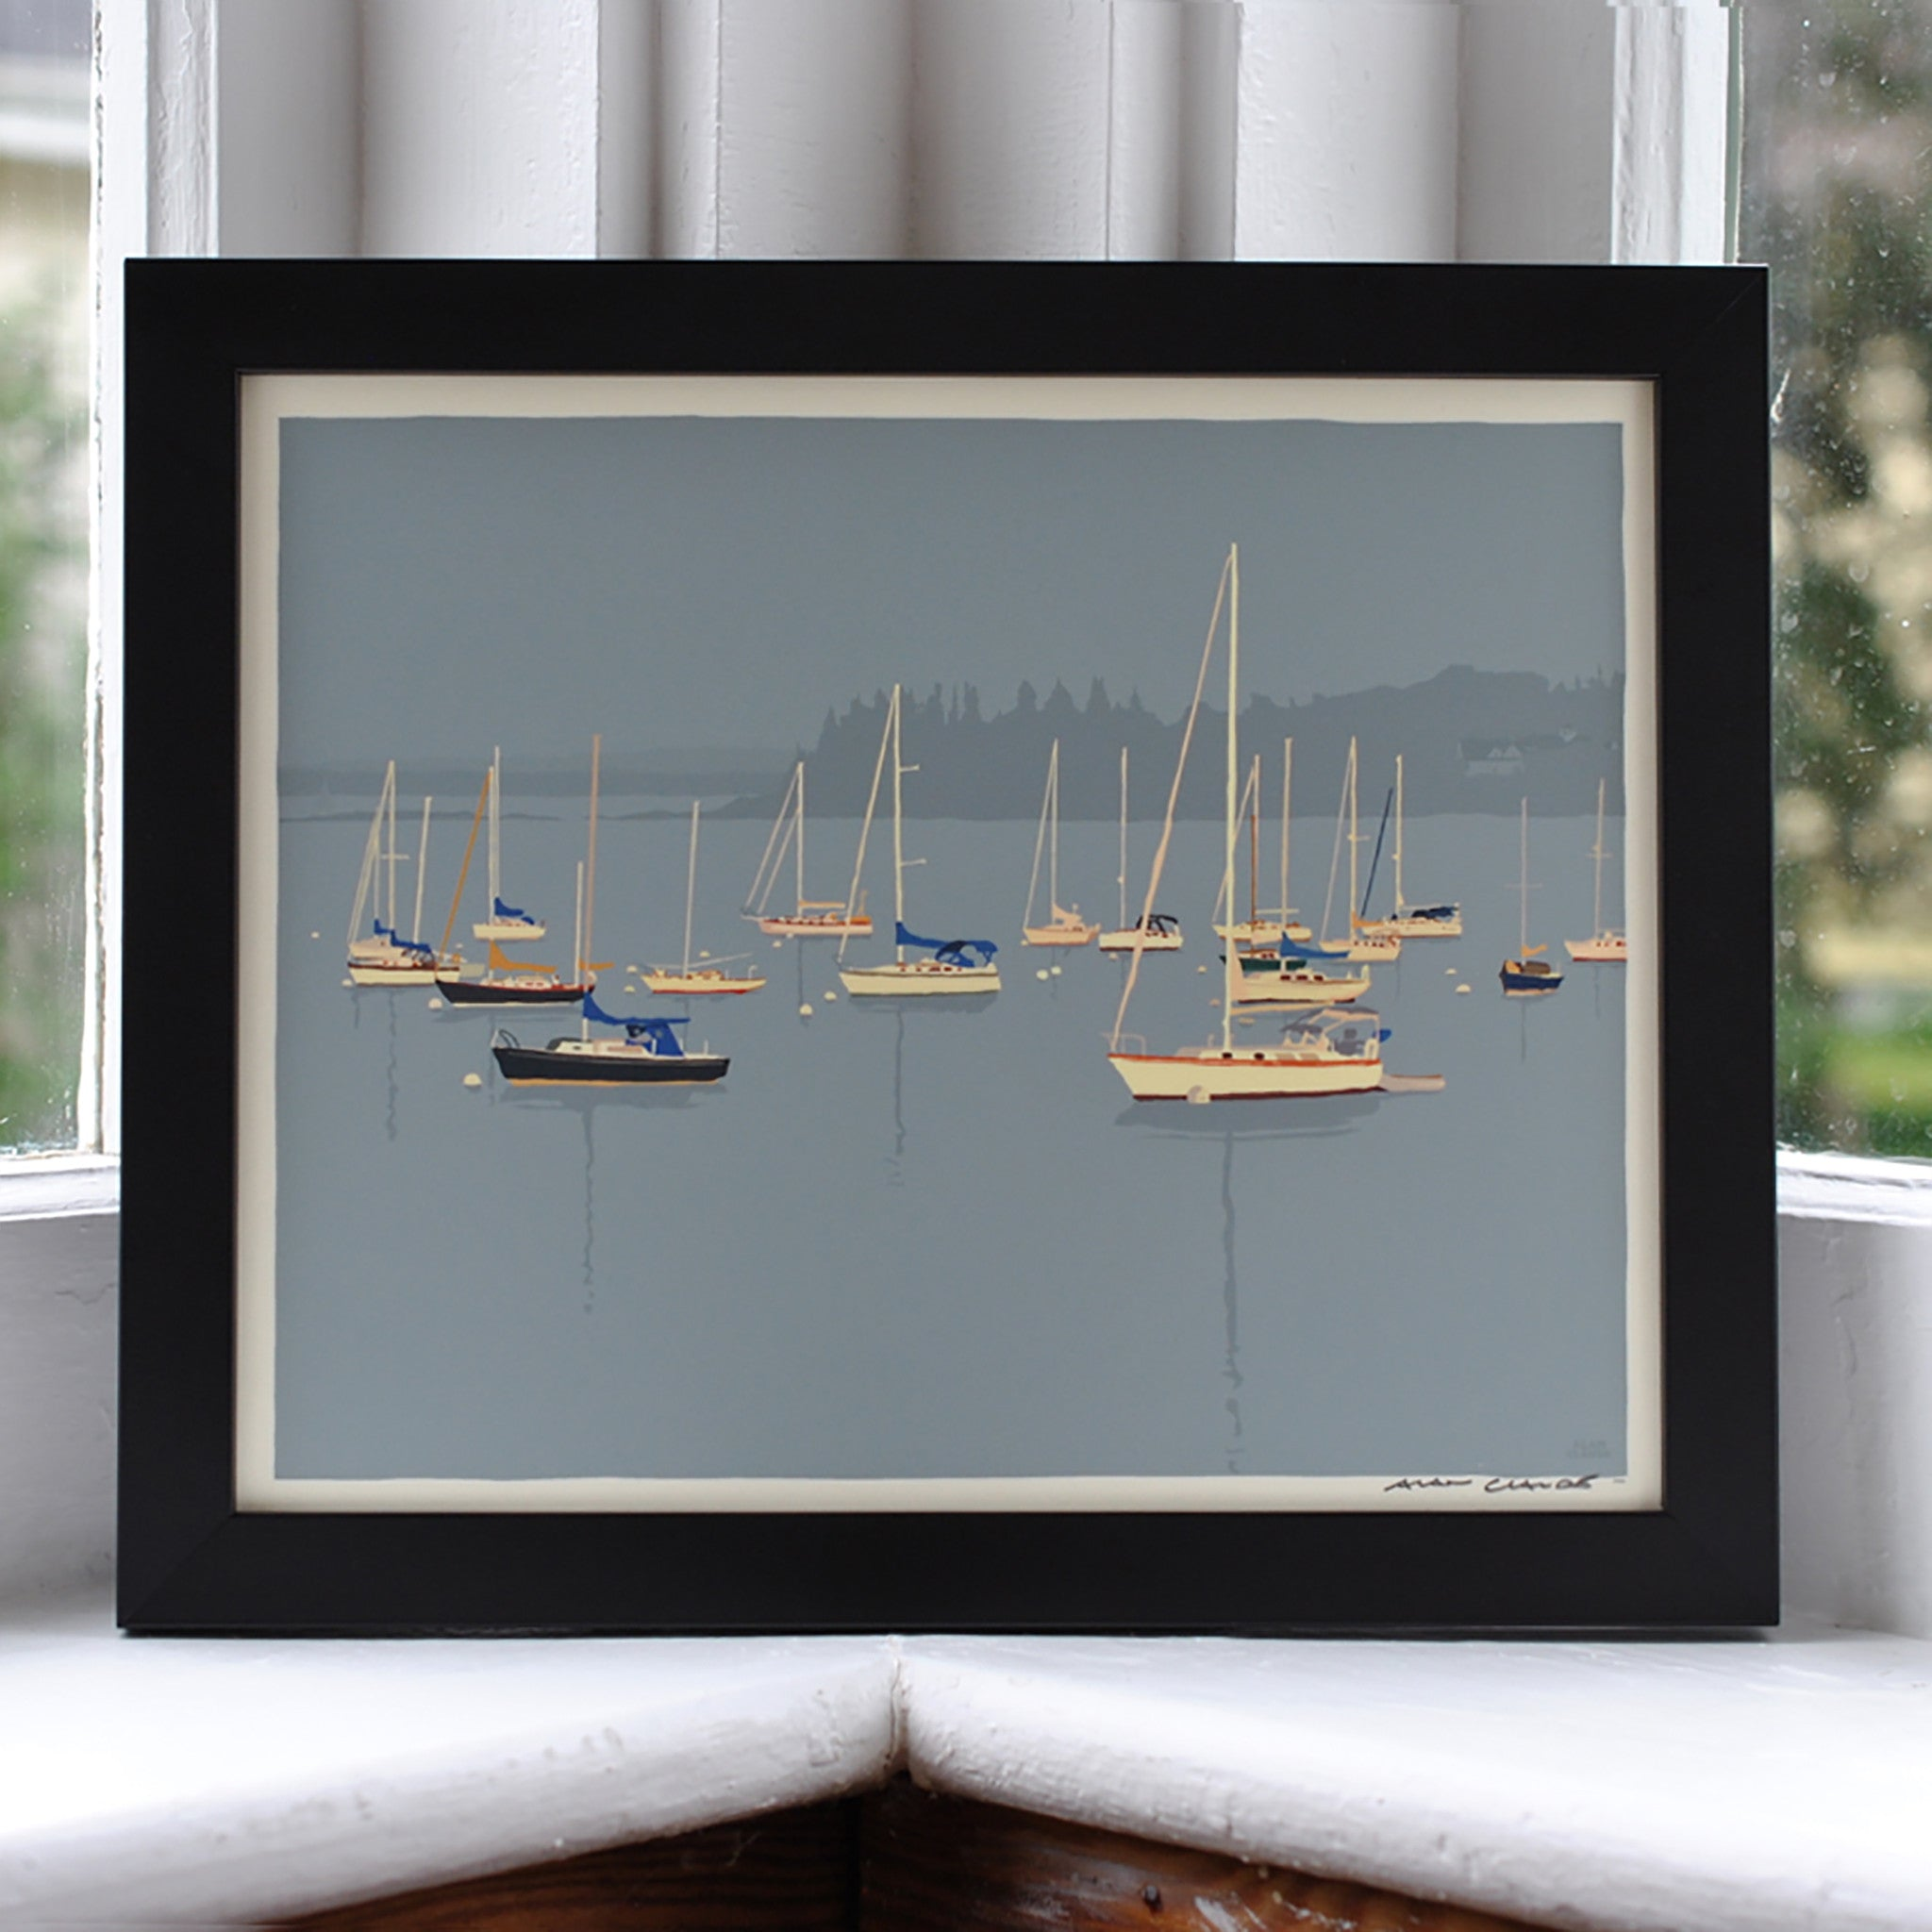 "Sailboats in Rockland Harbor Art Print 8"" x 10"" Framed Wall Poster - Maine"